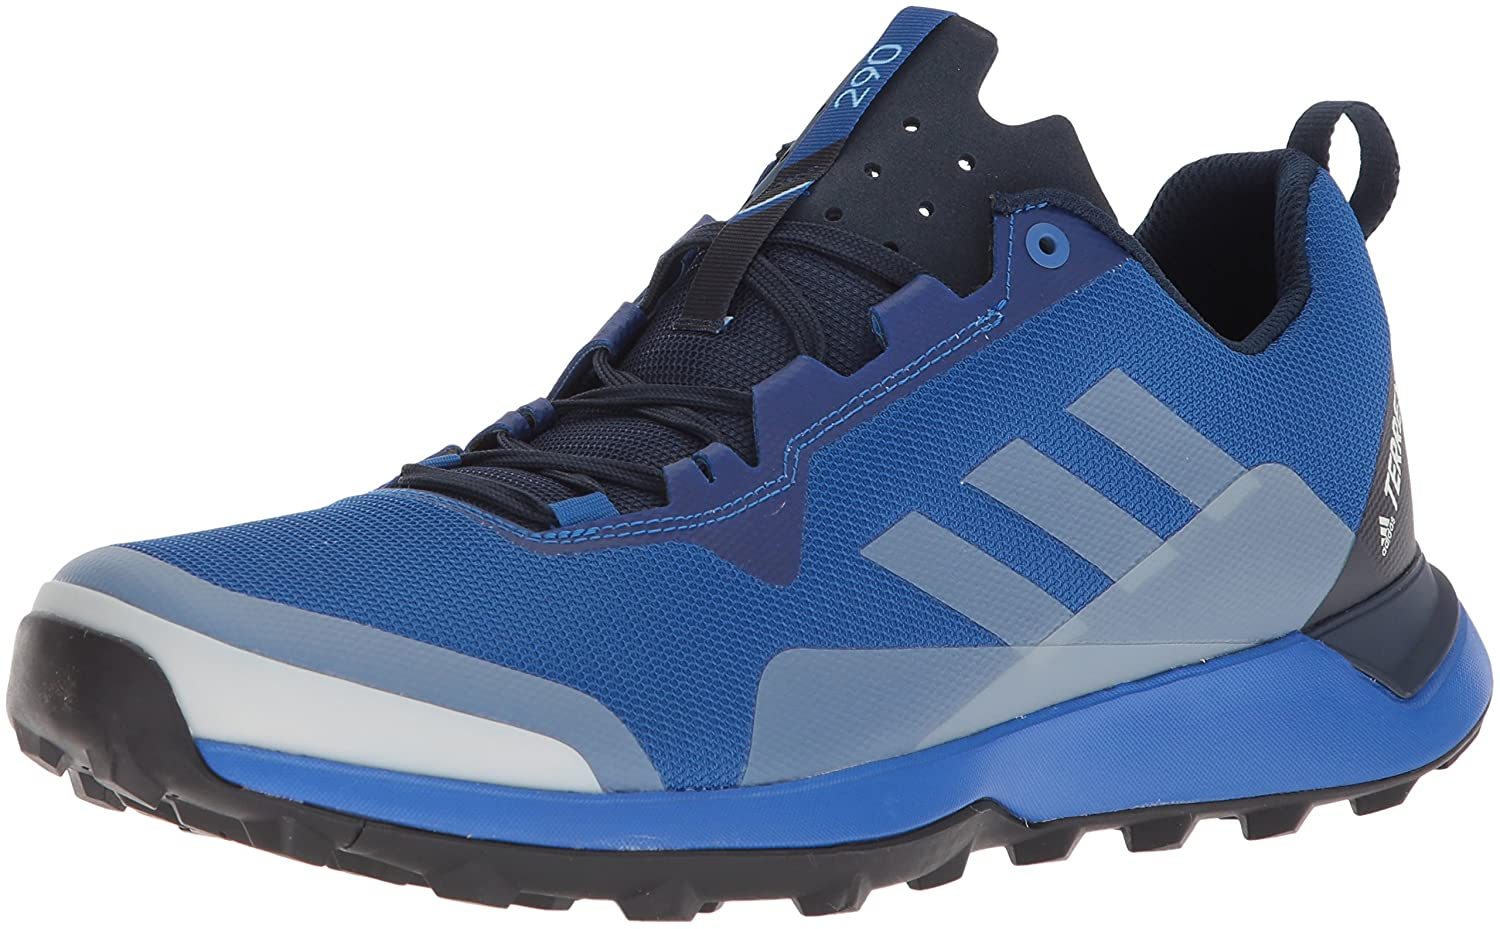 Adidas outdoor Men's Terrex CMTK Walking Schuhe, Blau Beauty Grau One Col. Navy, 14 D US